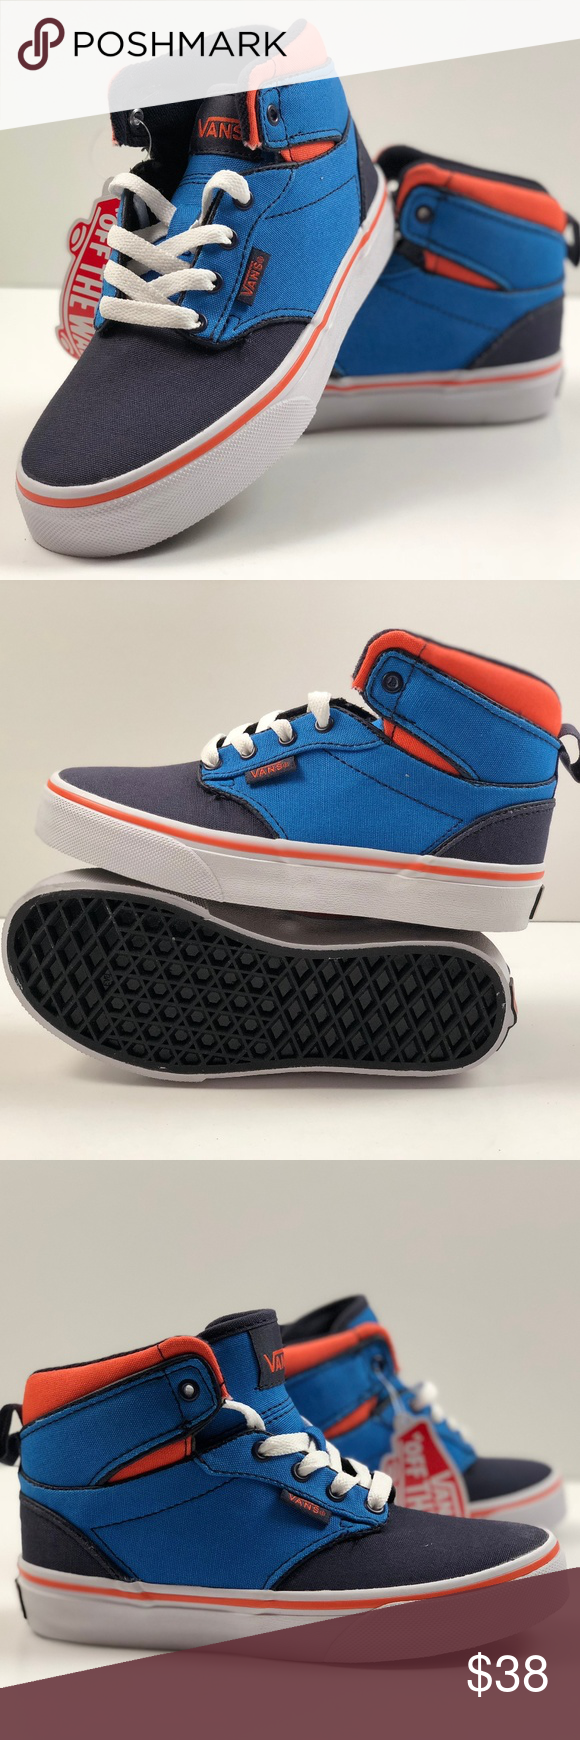 88e655b2d99776 Vans Atwood Hi Canvas Blue Orange Skate Kids Shoes Vans Atwood Hi Canvas  Blue Orange Skate Kids Shoes. Condition  New with box. Size  Youth 13.5 Vans  Shoes ...